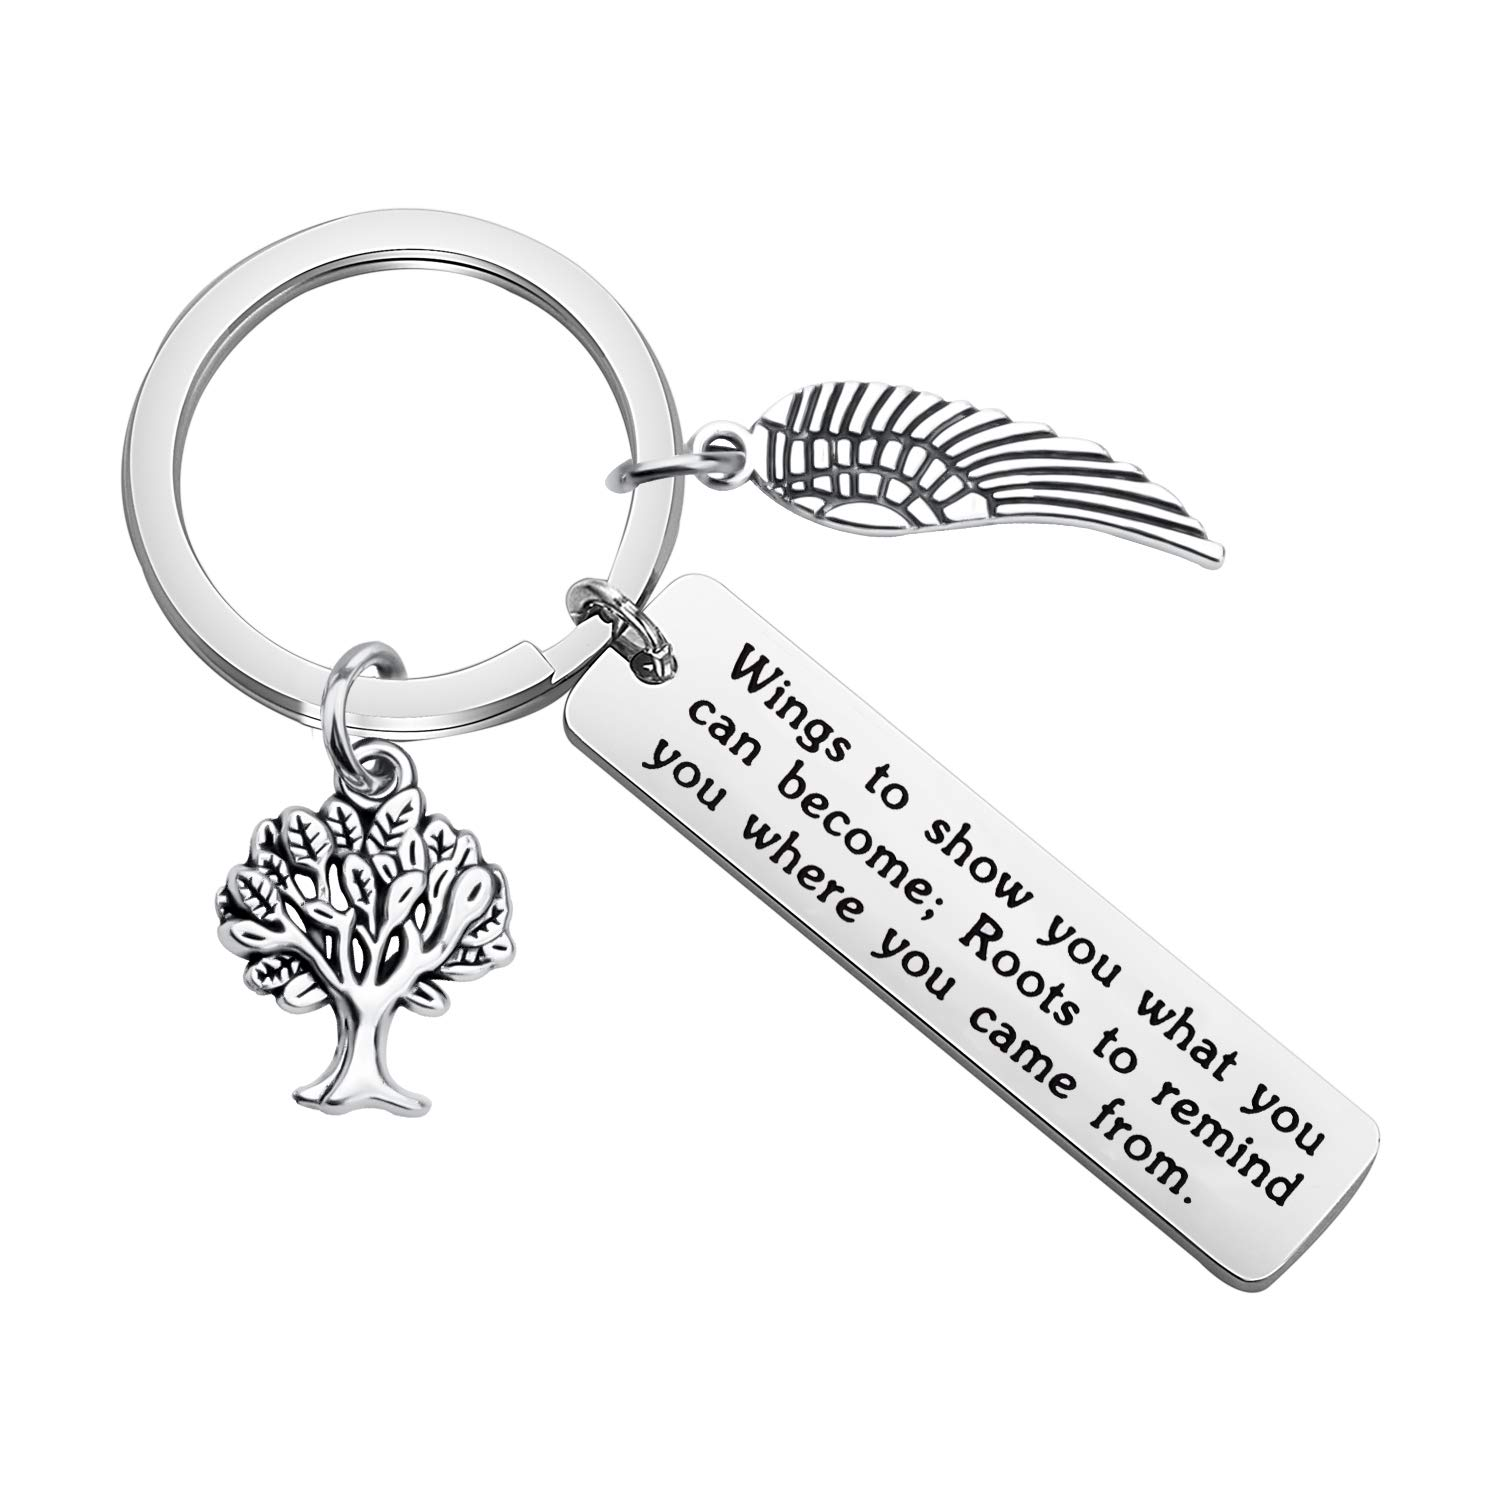 bobauna Inspirational Keychain Wings to Show You What You Can Become Encouragement Jewelry Going Away Gift for Family Teacher Graduate